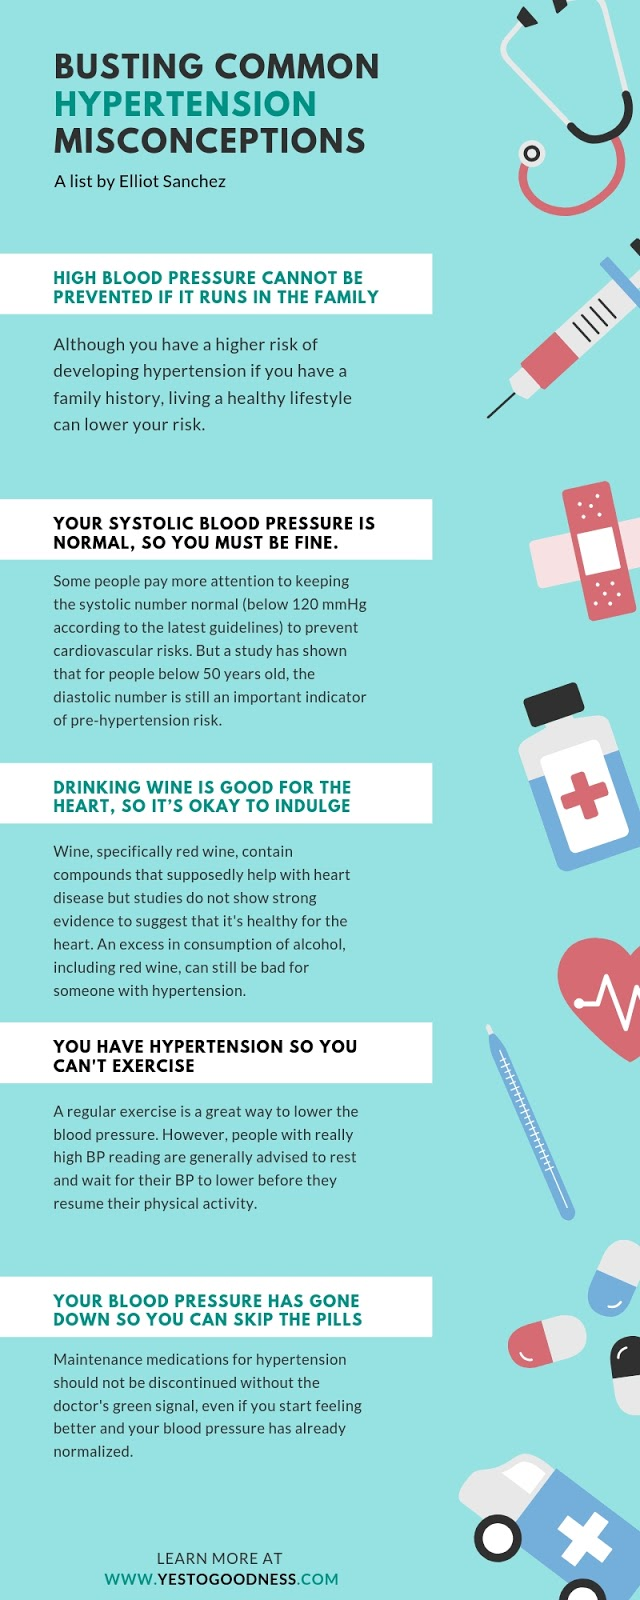 busting common hypertension misconceptions [yestogoodness.com]